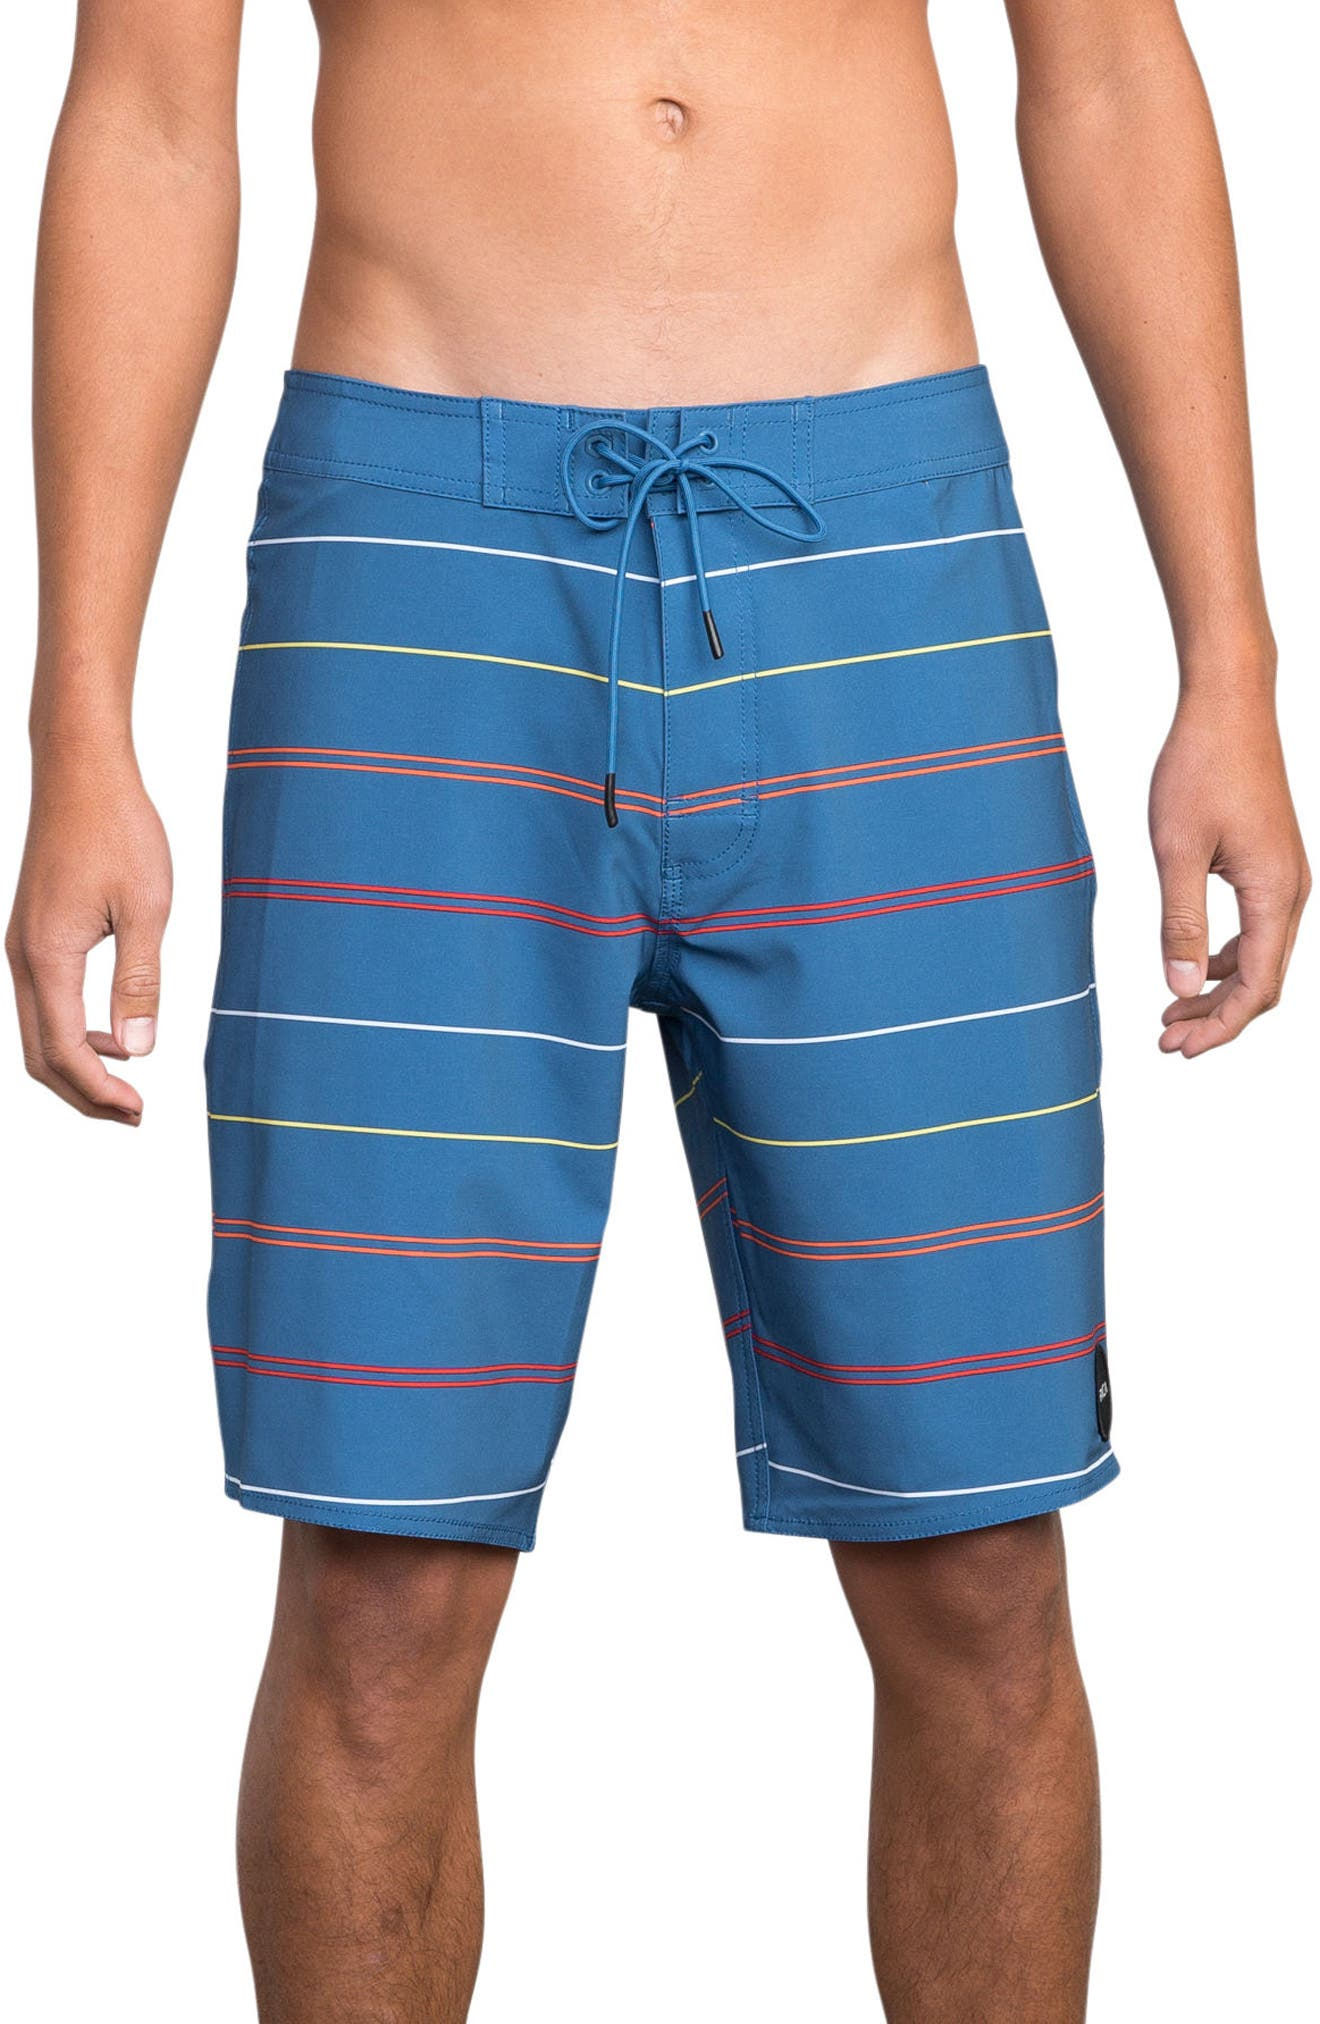 Middle Swim Trunks,                         Main,                         color, COBALT